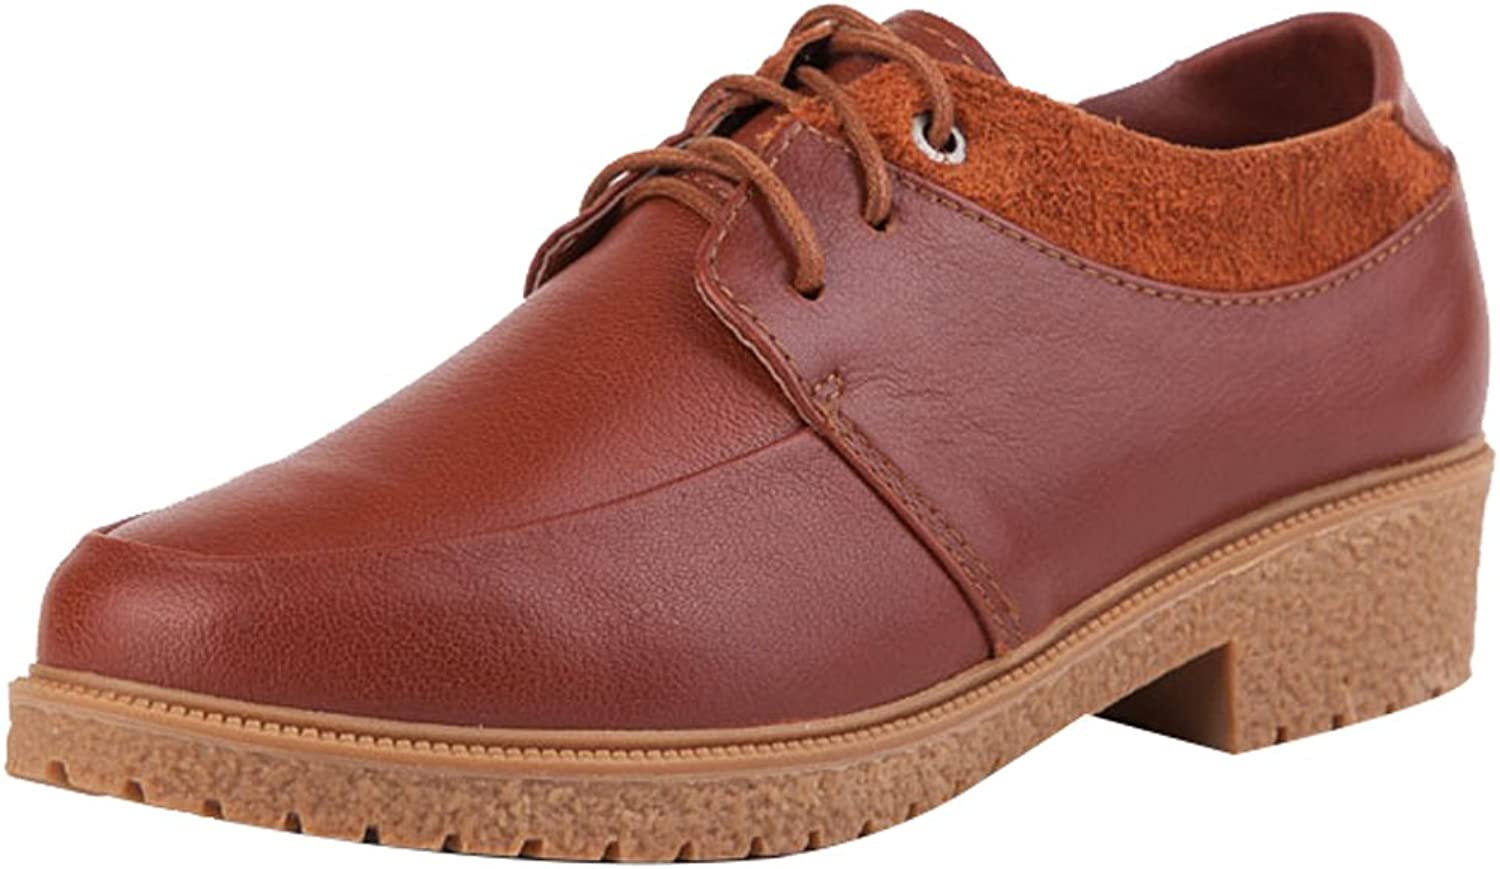 Zoulee Women's Leather Lace Up Oxfords shoes